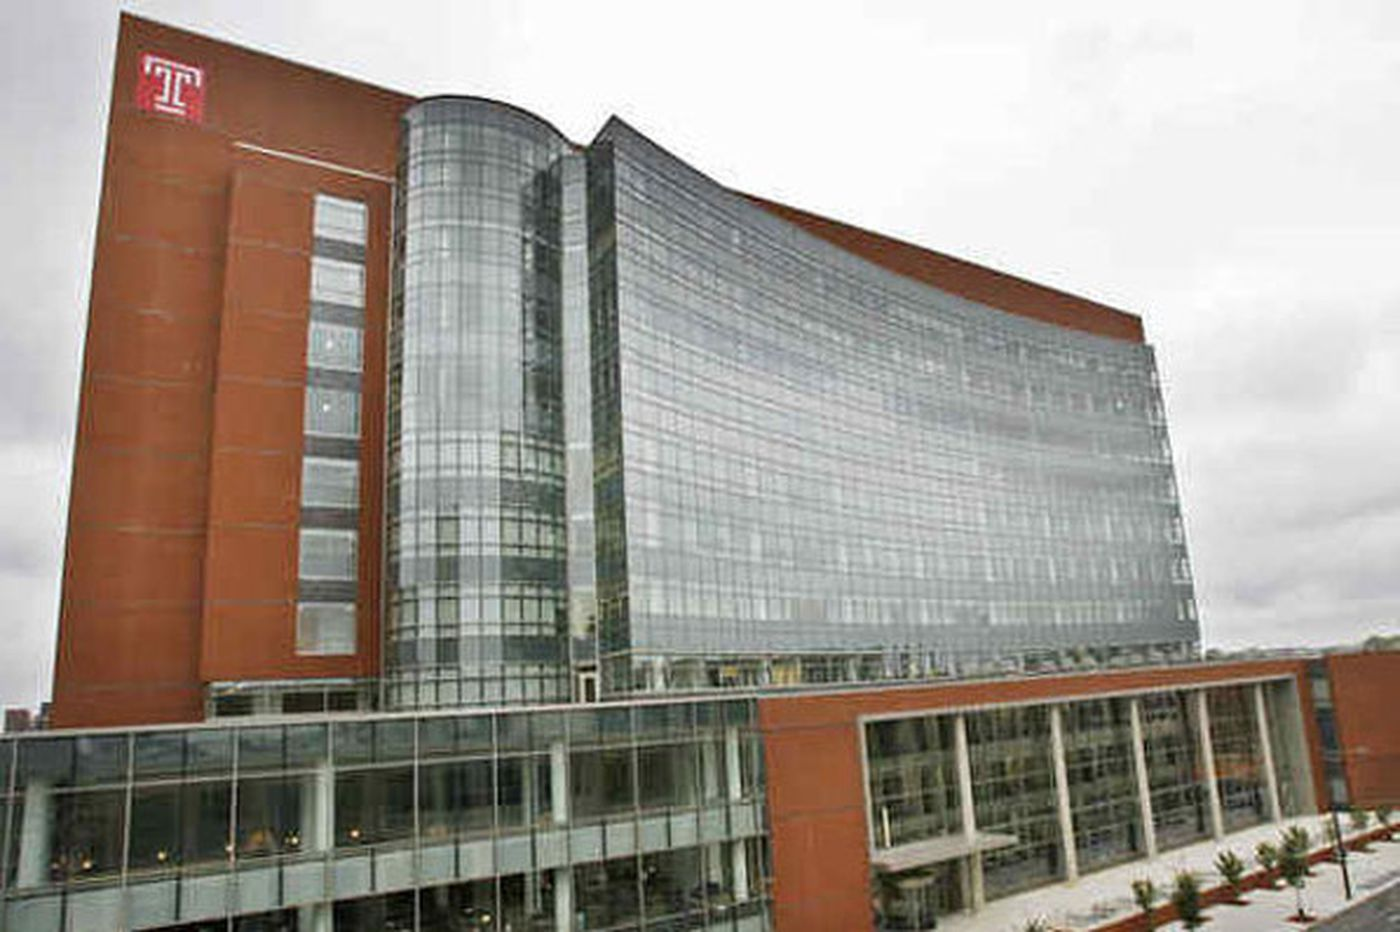 U.S. ordered to pay half of Temple hospital's $8 million birth injury settlement